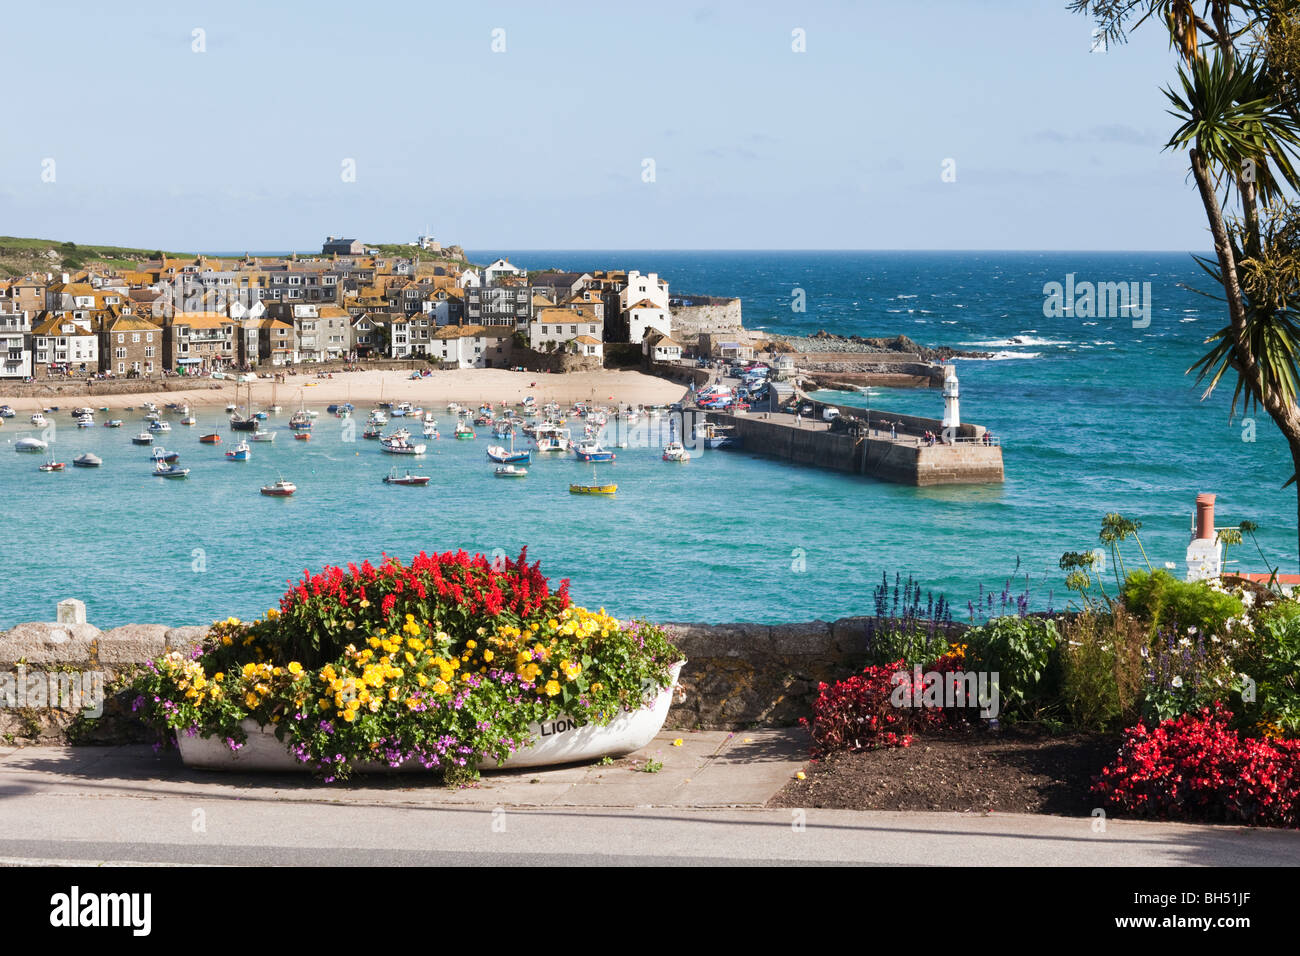 The popular seaside resort of St Ives, Cornwall - Stock Image